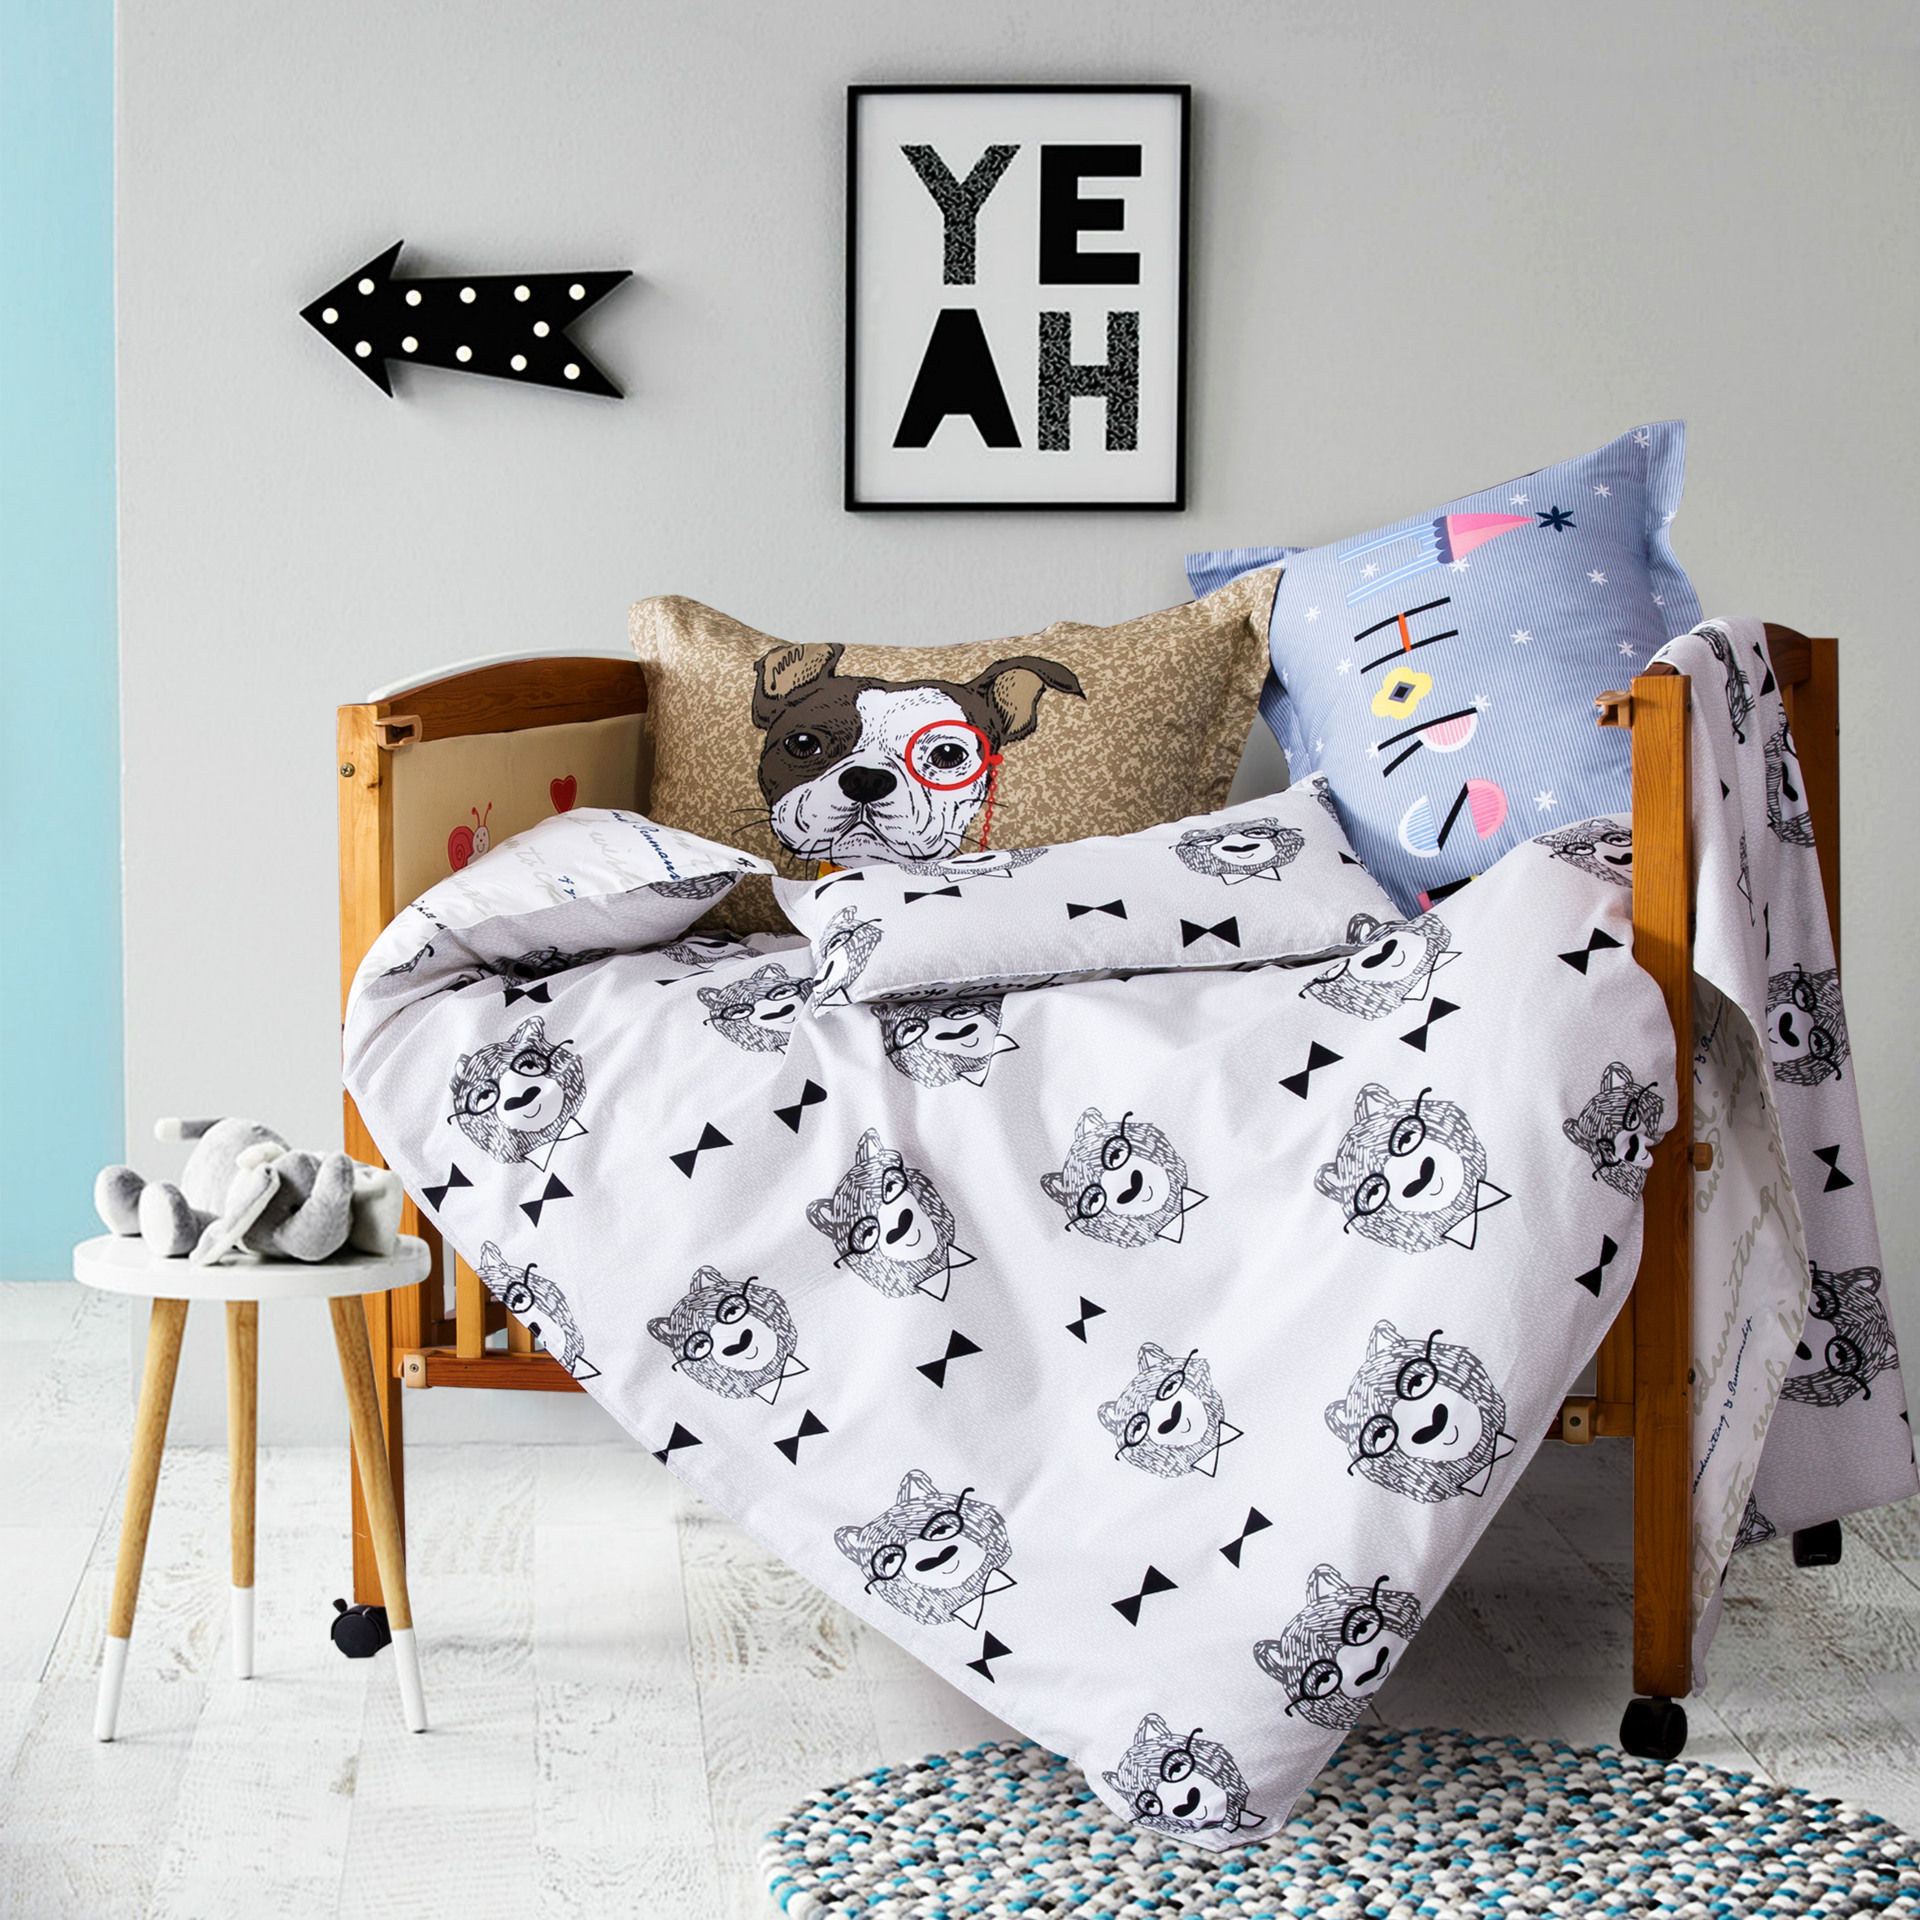 3pcs set for baby bed crib bedding set baby bedding Cartoon design for girls boys bedding duvet / quilt cover pillowcase sheet colorful bedding star and moon duvet cover set 3pcs